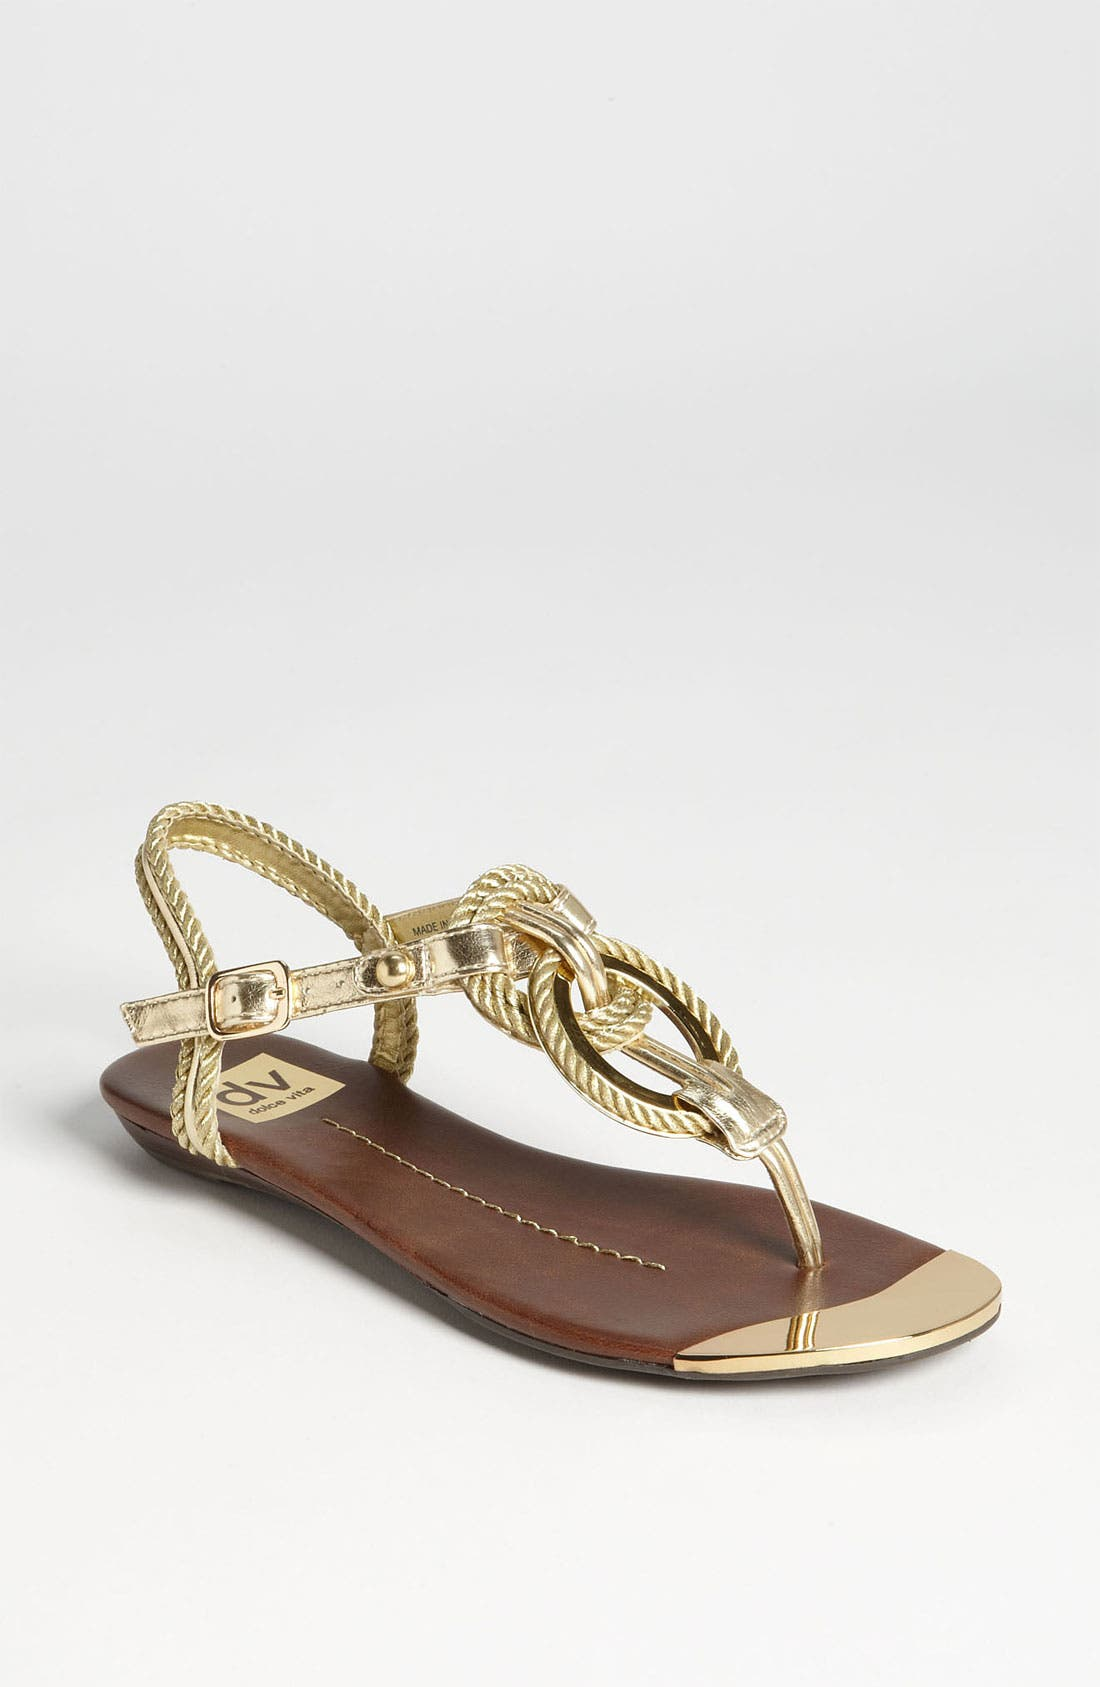 Alternate Image 1 Selected - DV by Dolce Vita 'Agnyss' Sandal